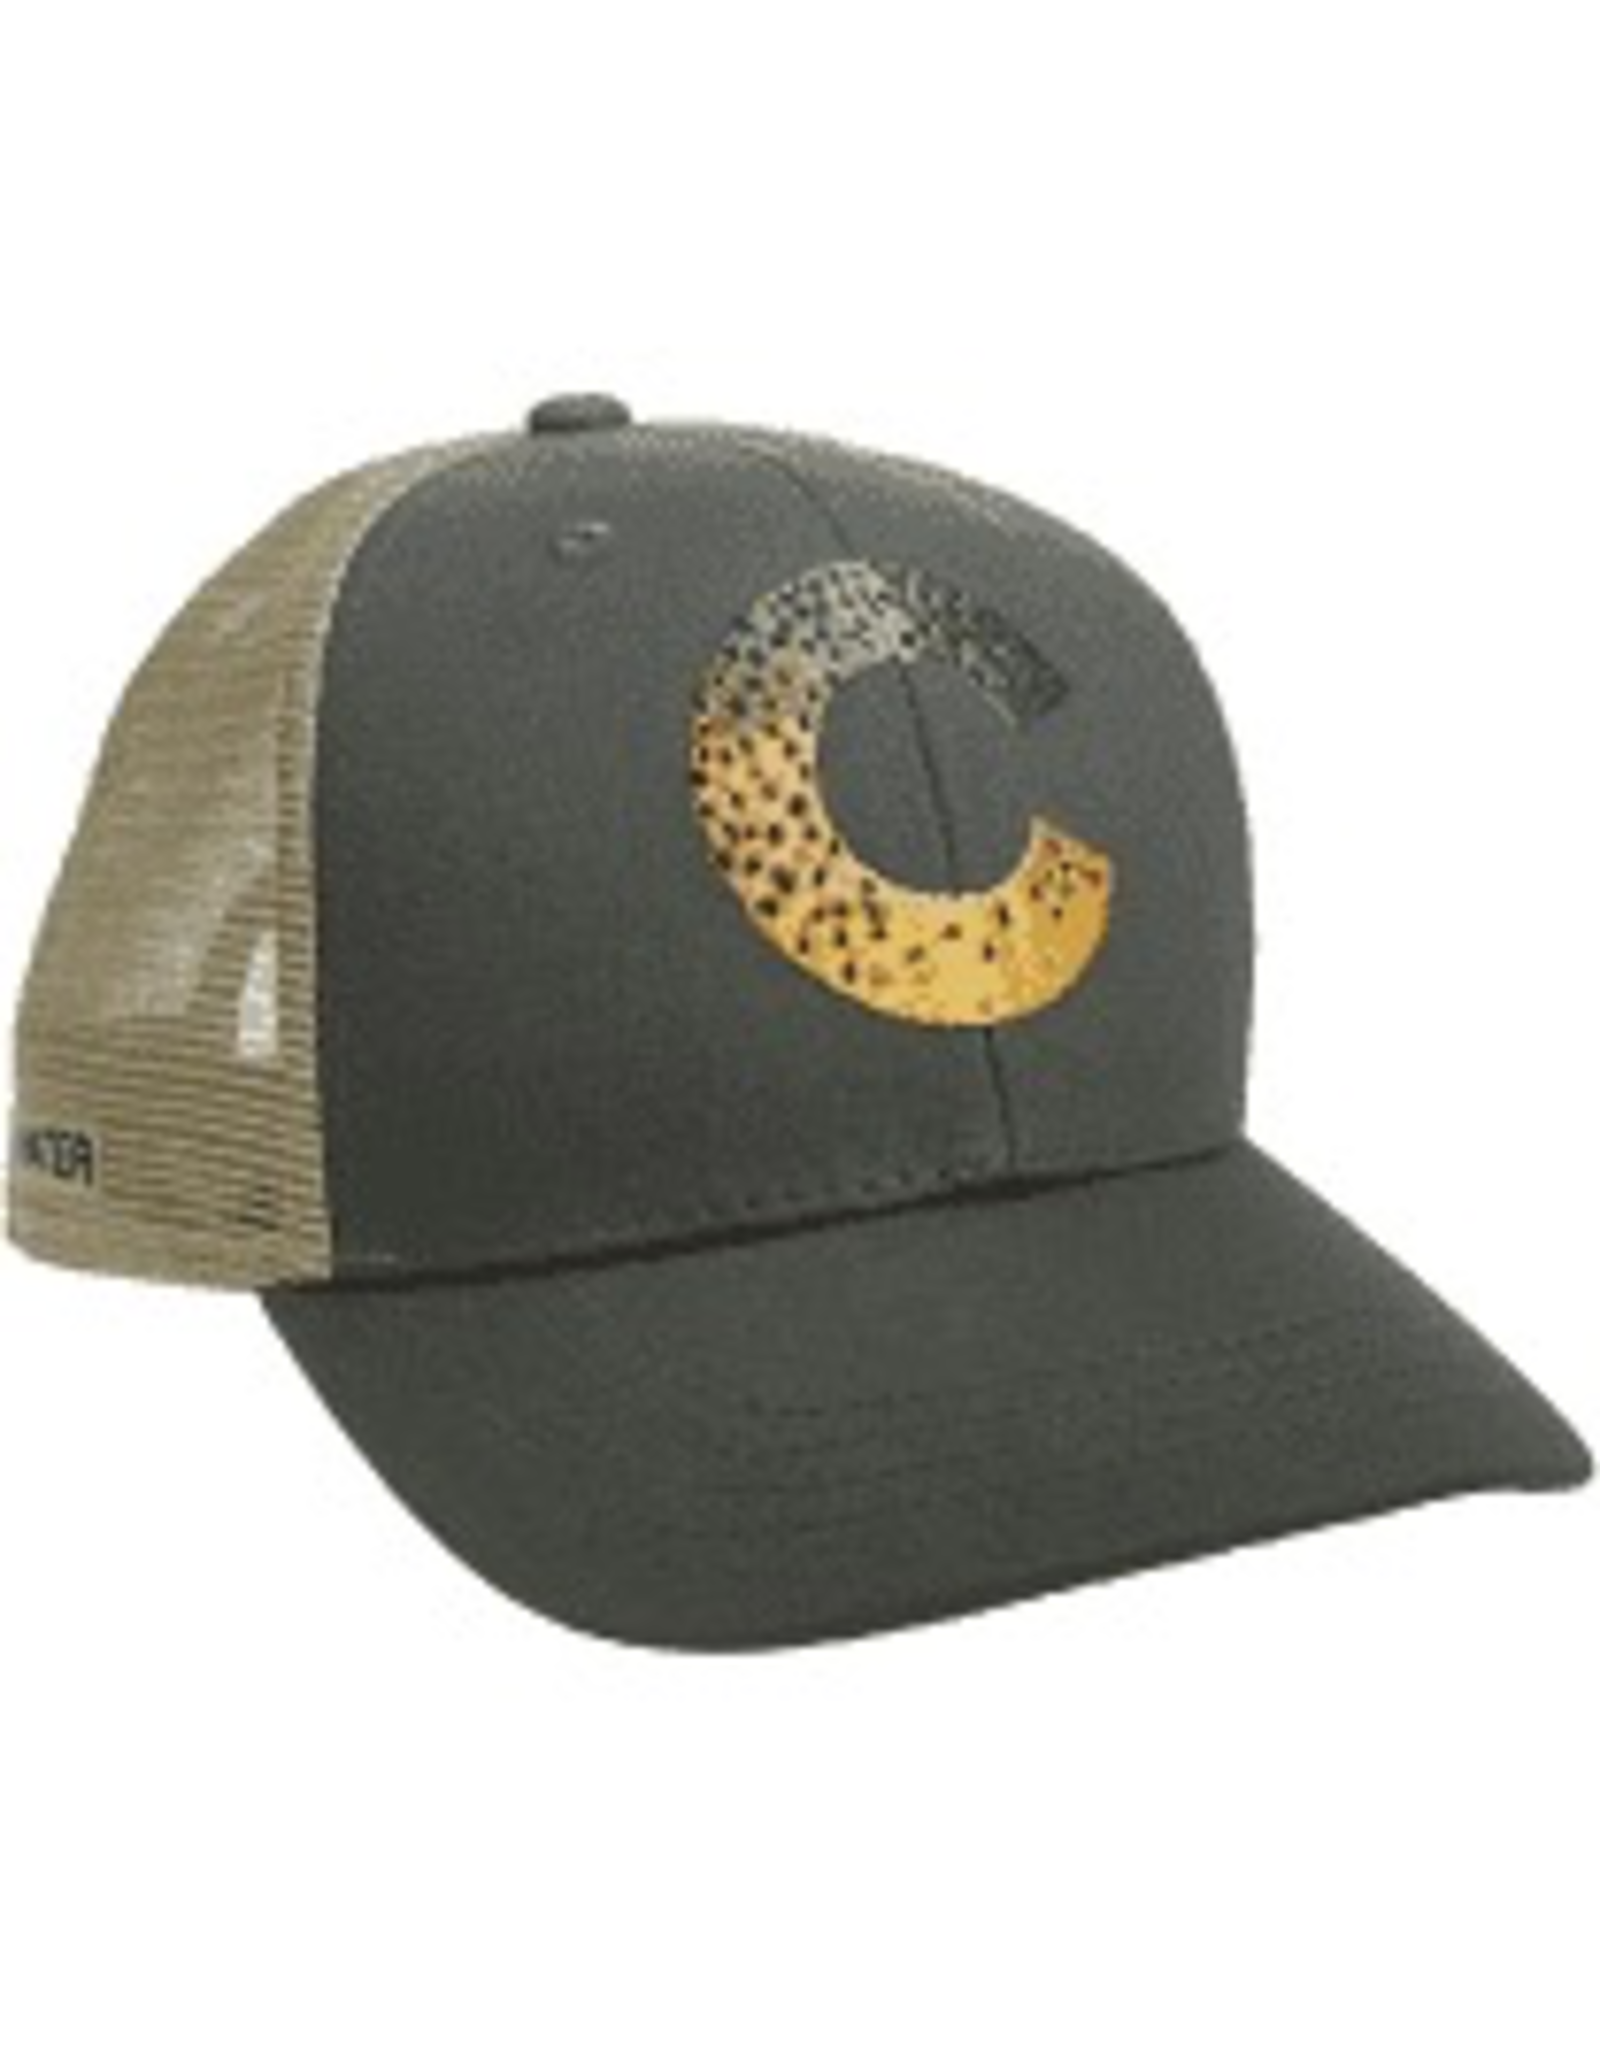 Rep Your Water Rep Your Water Colorado Brown Trout Skin